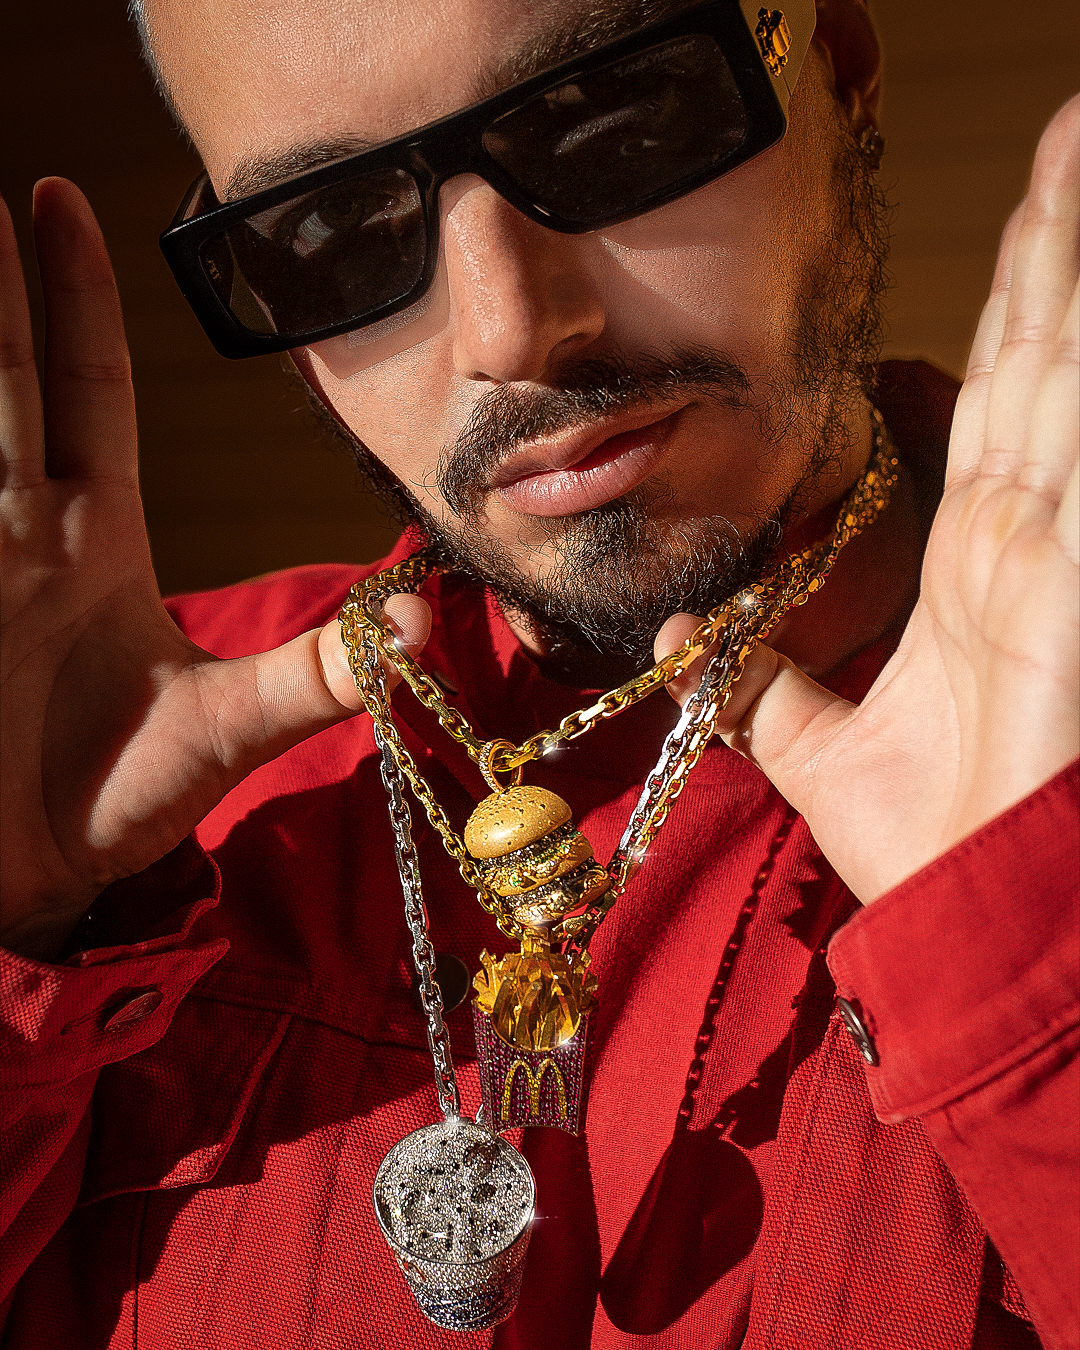 McDonald's and J Balvin Collab on Custom Jewelry